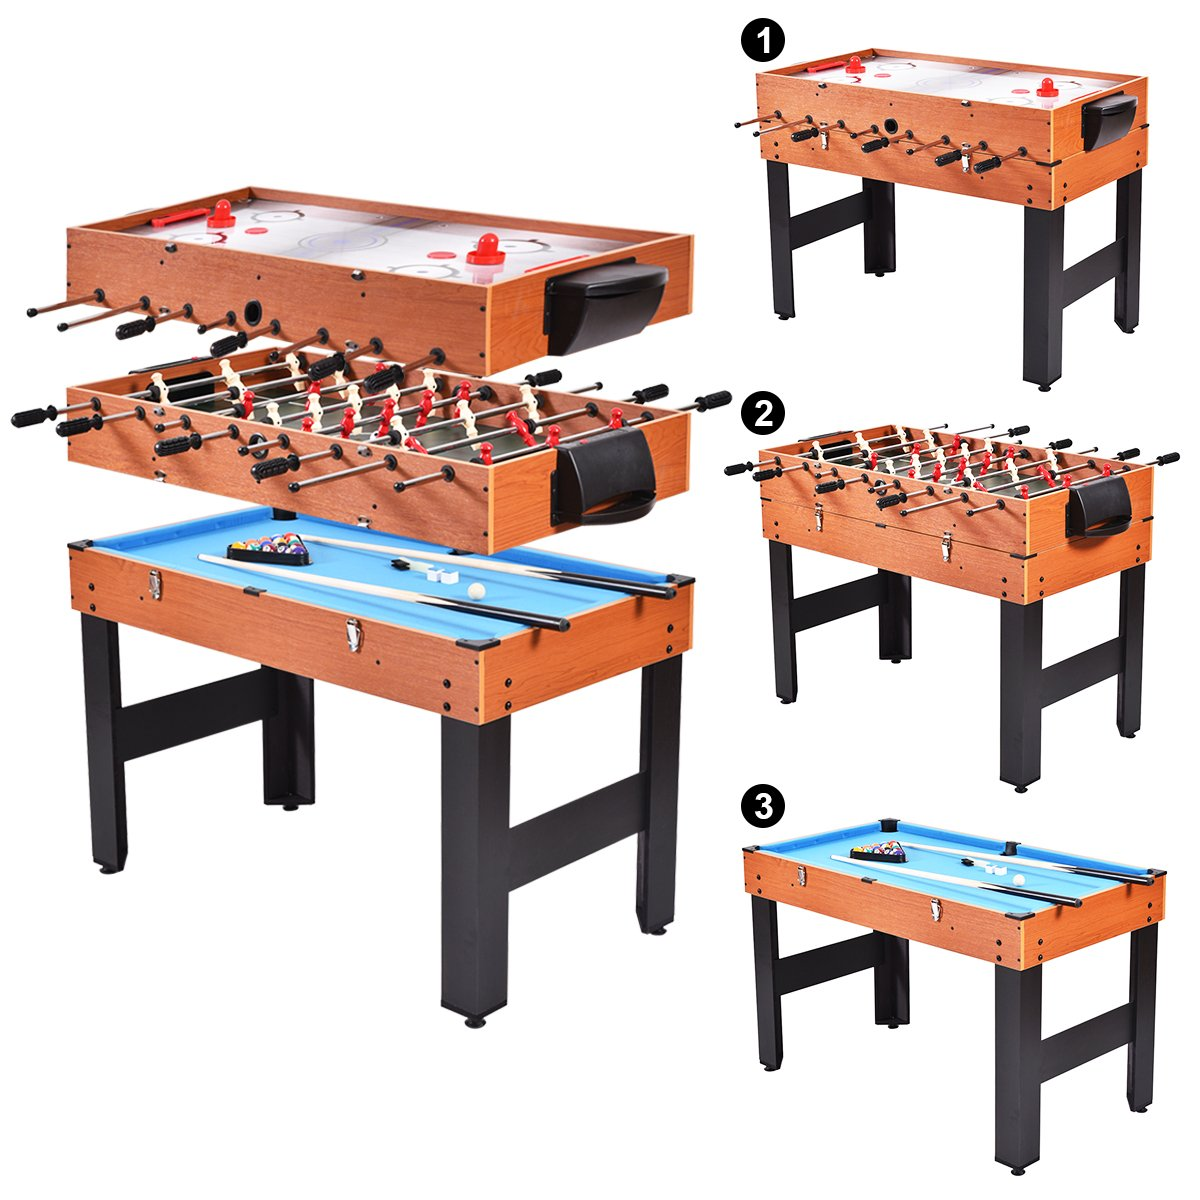 GYMAX Multi Game Table, 3-in-1 Multifunction Foosball Billiard Slide Hockey Combo Arcade Game Table